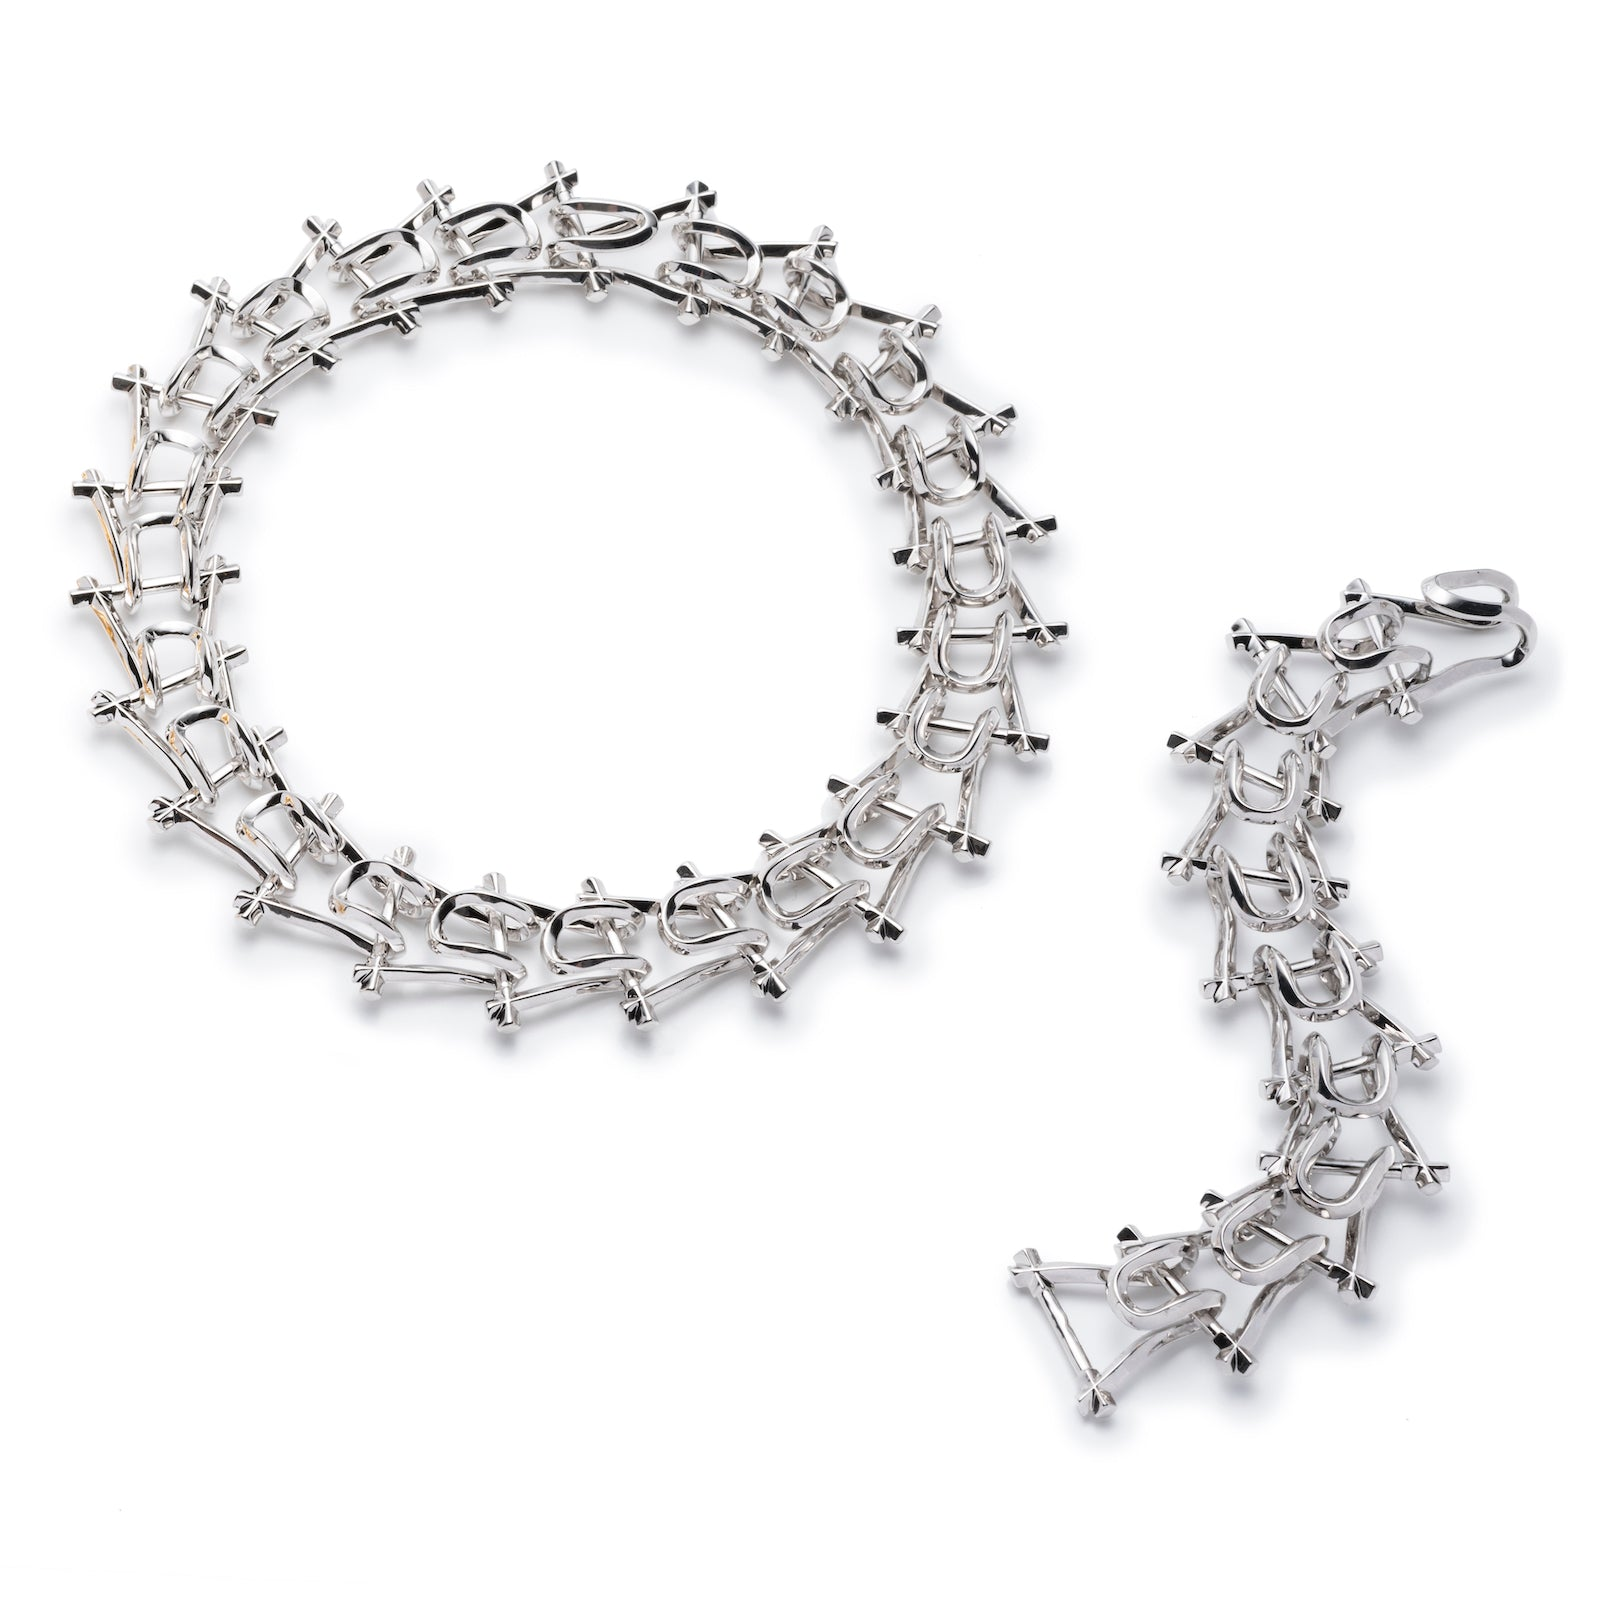 MARCY LINK NECKLACE & BRACELET - SILVER PLATED #POWEROFTHEPAIR SET